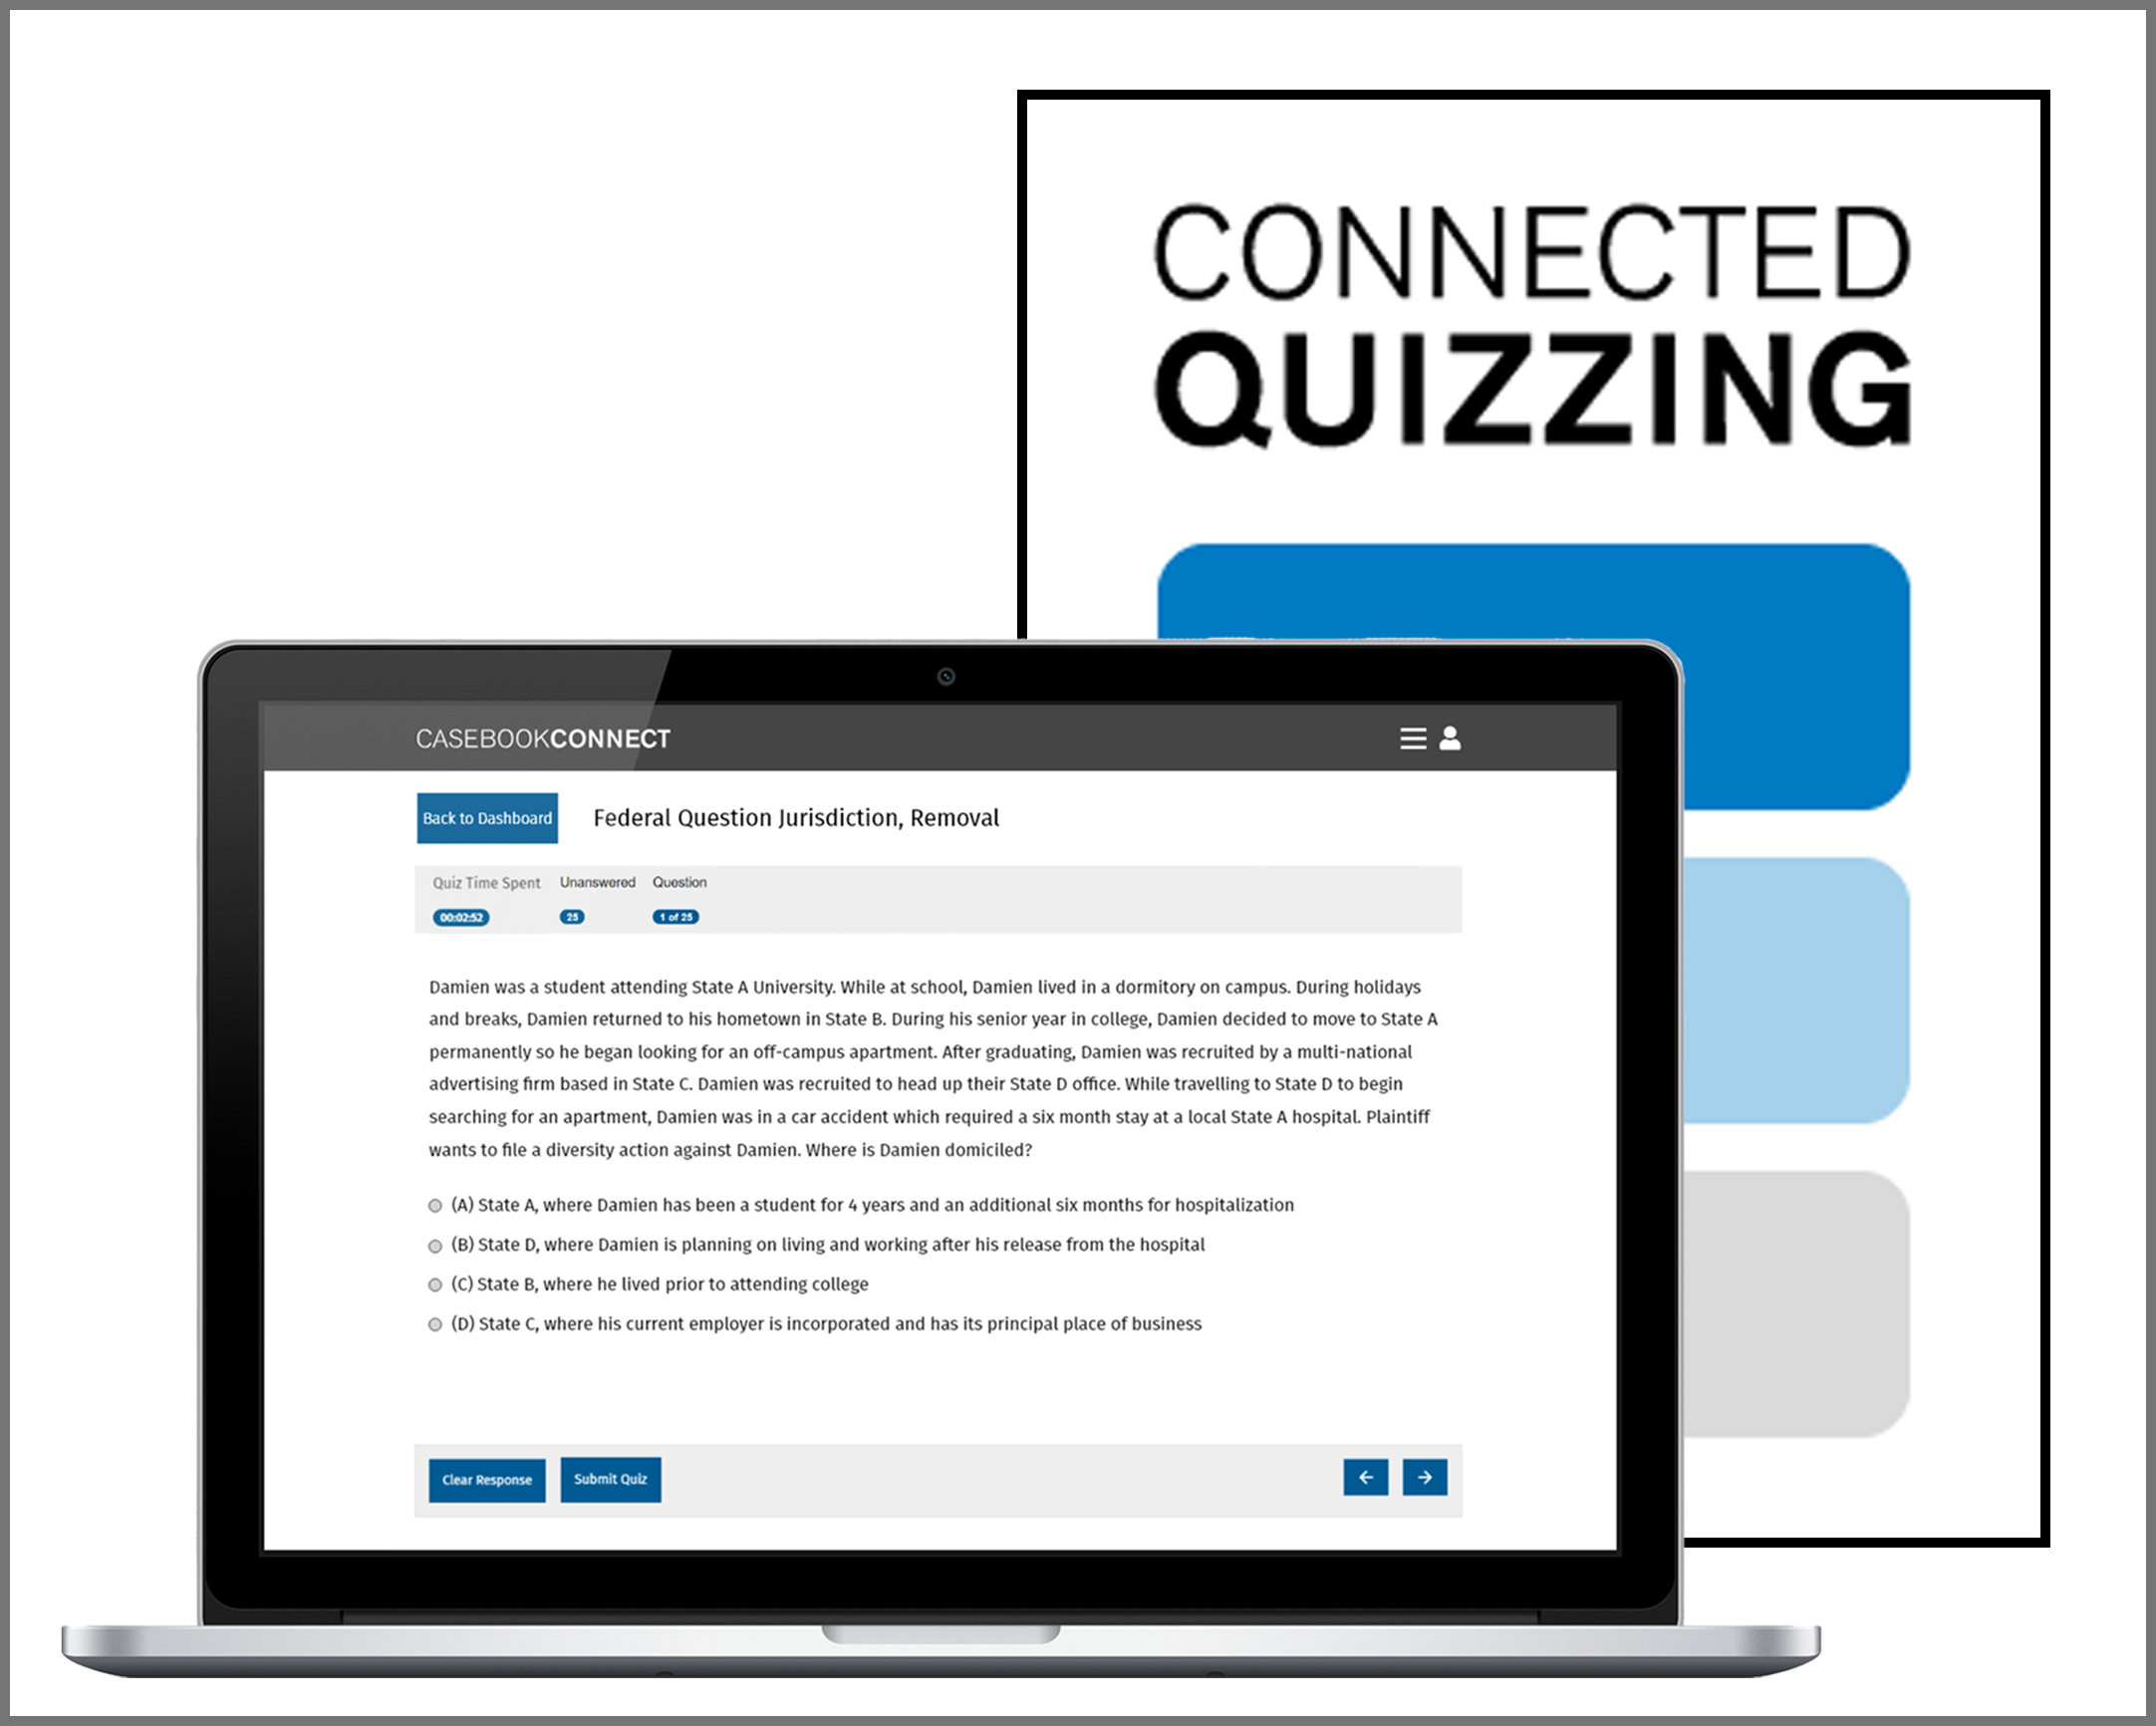 Connected Quizzing